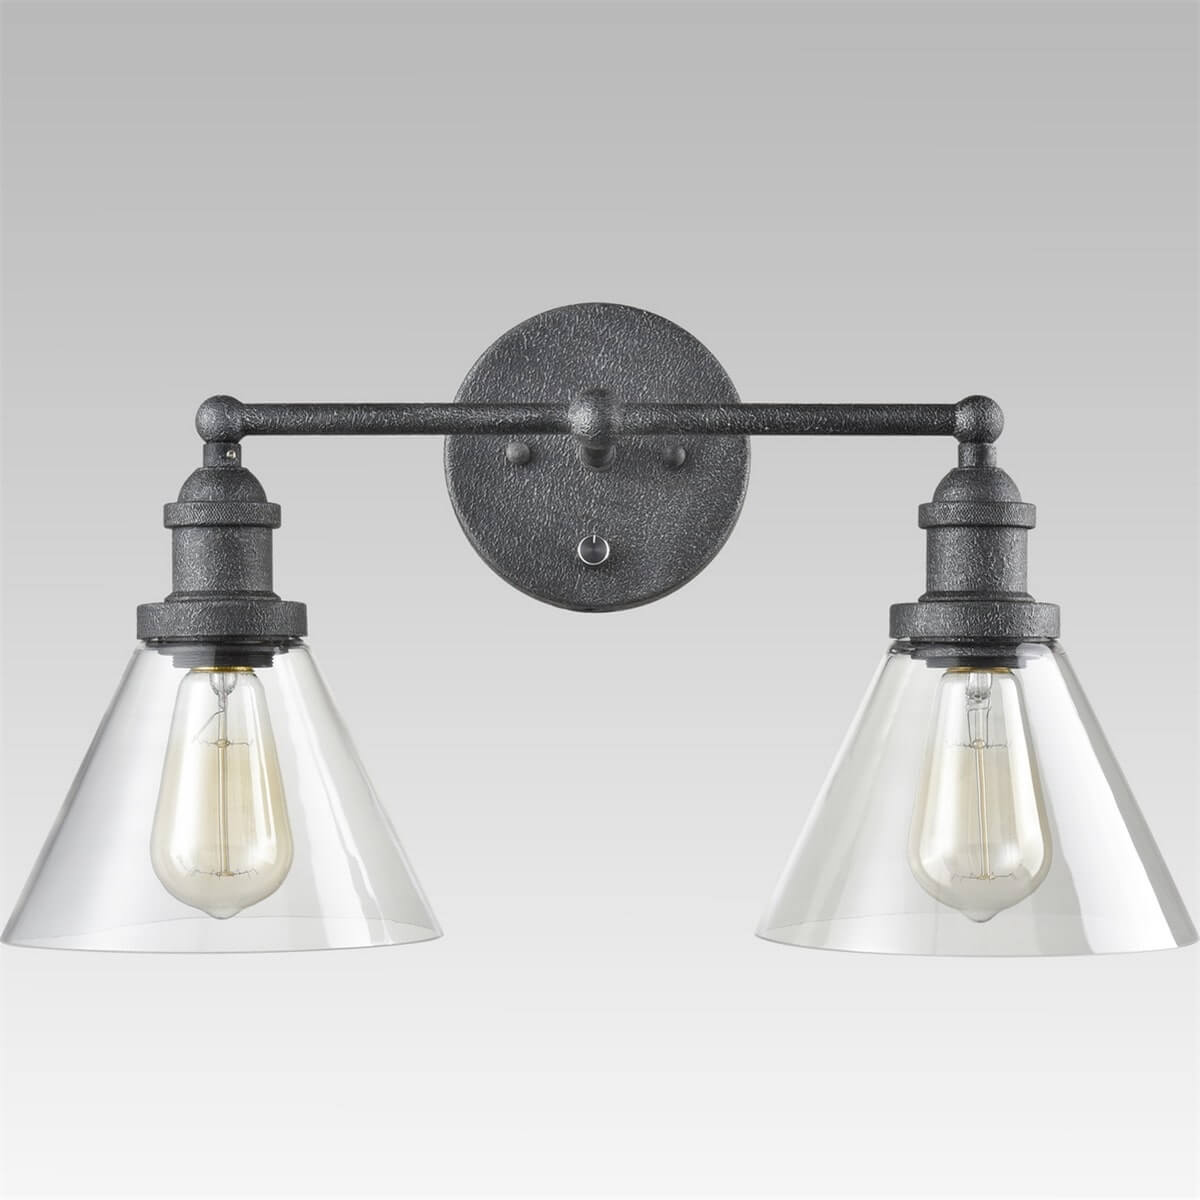 Vintage Plug-in Glass Wall Sconce Double Light Bell Shape